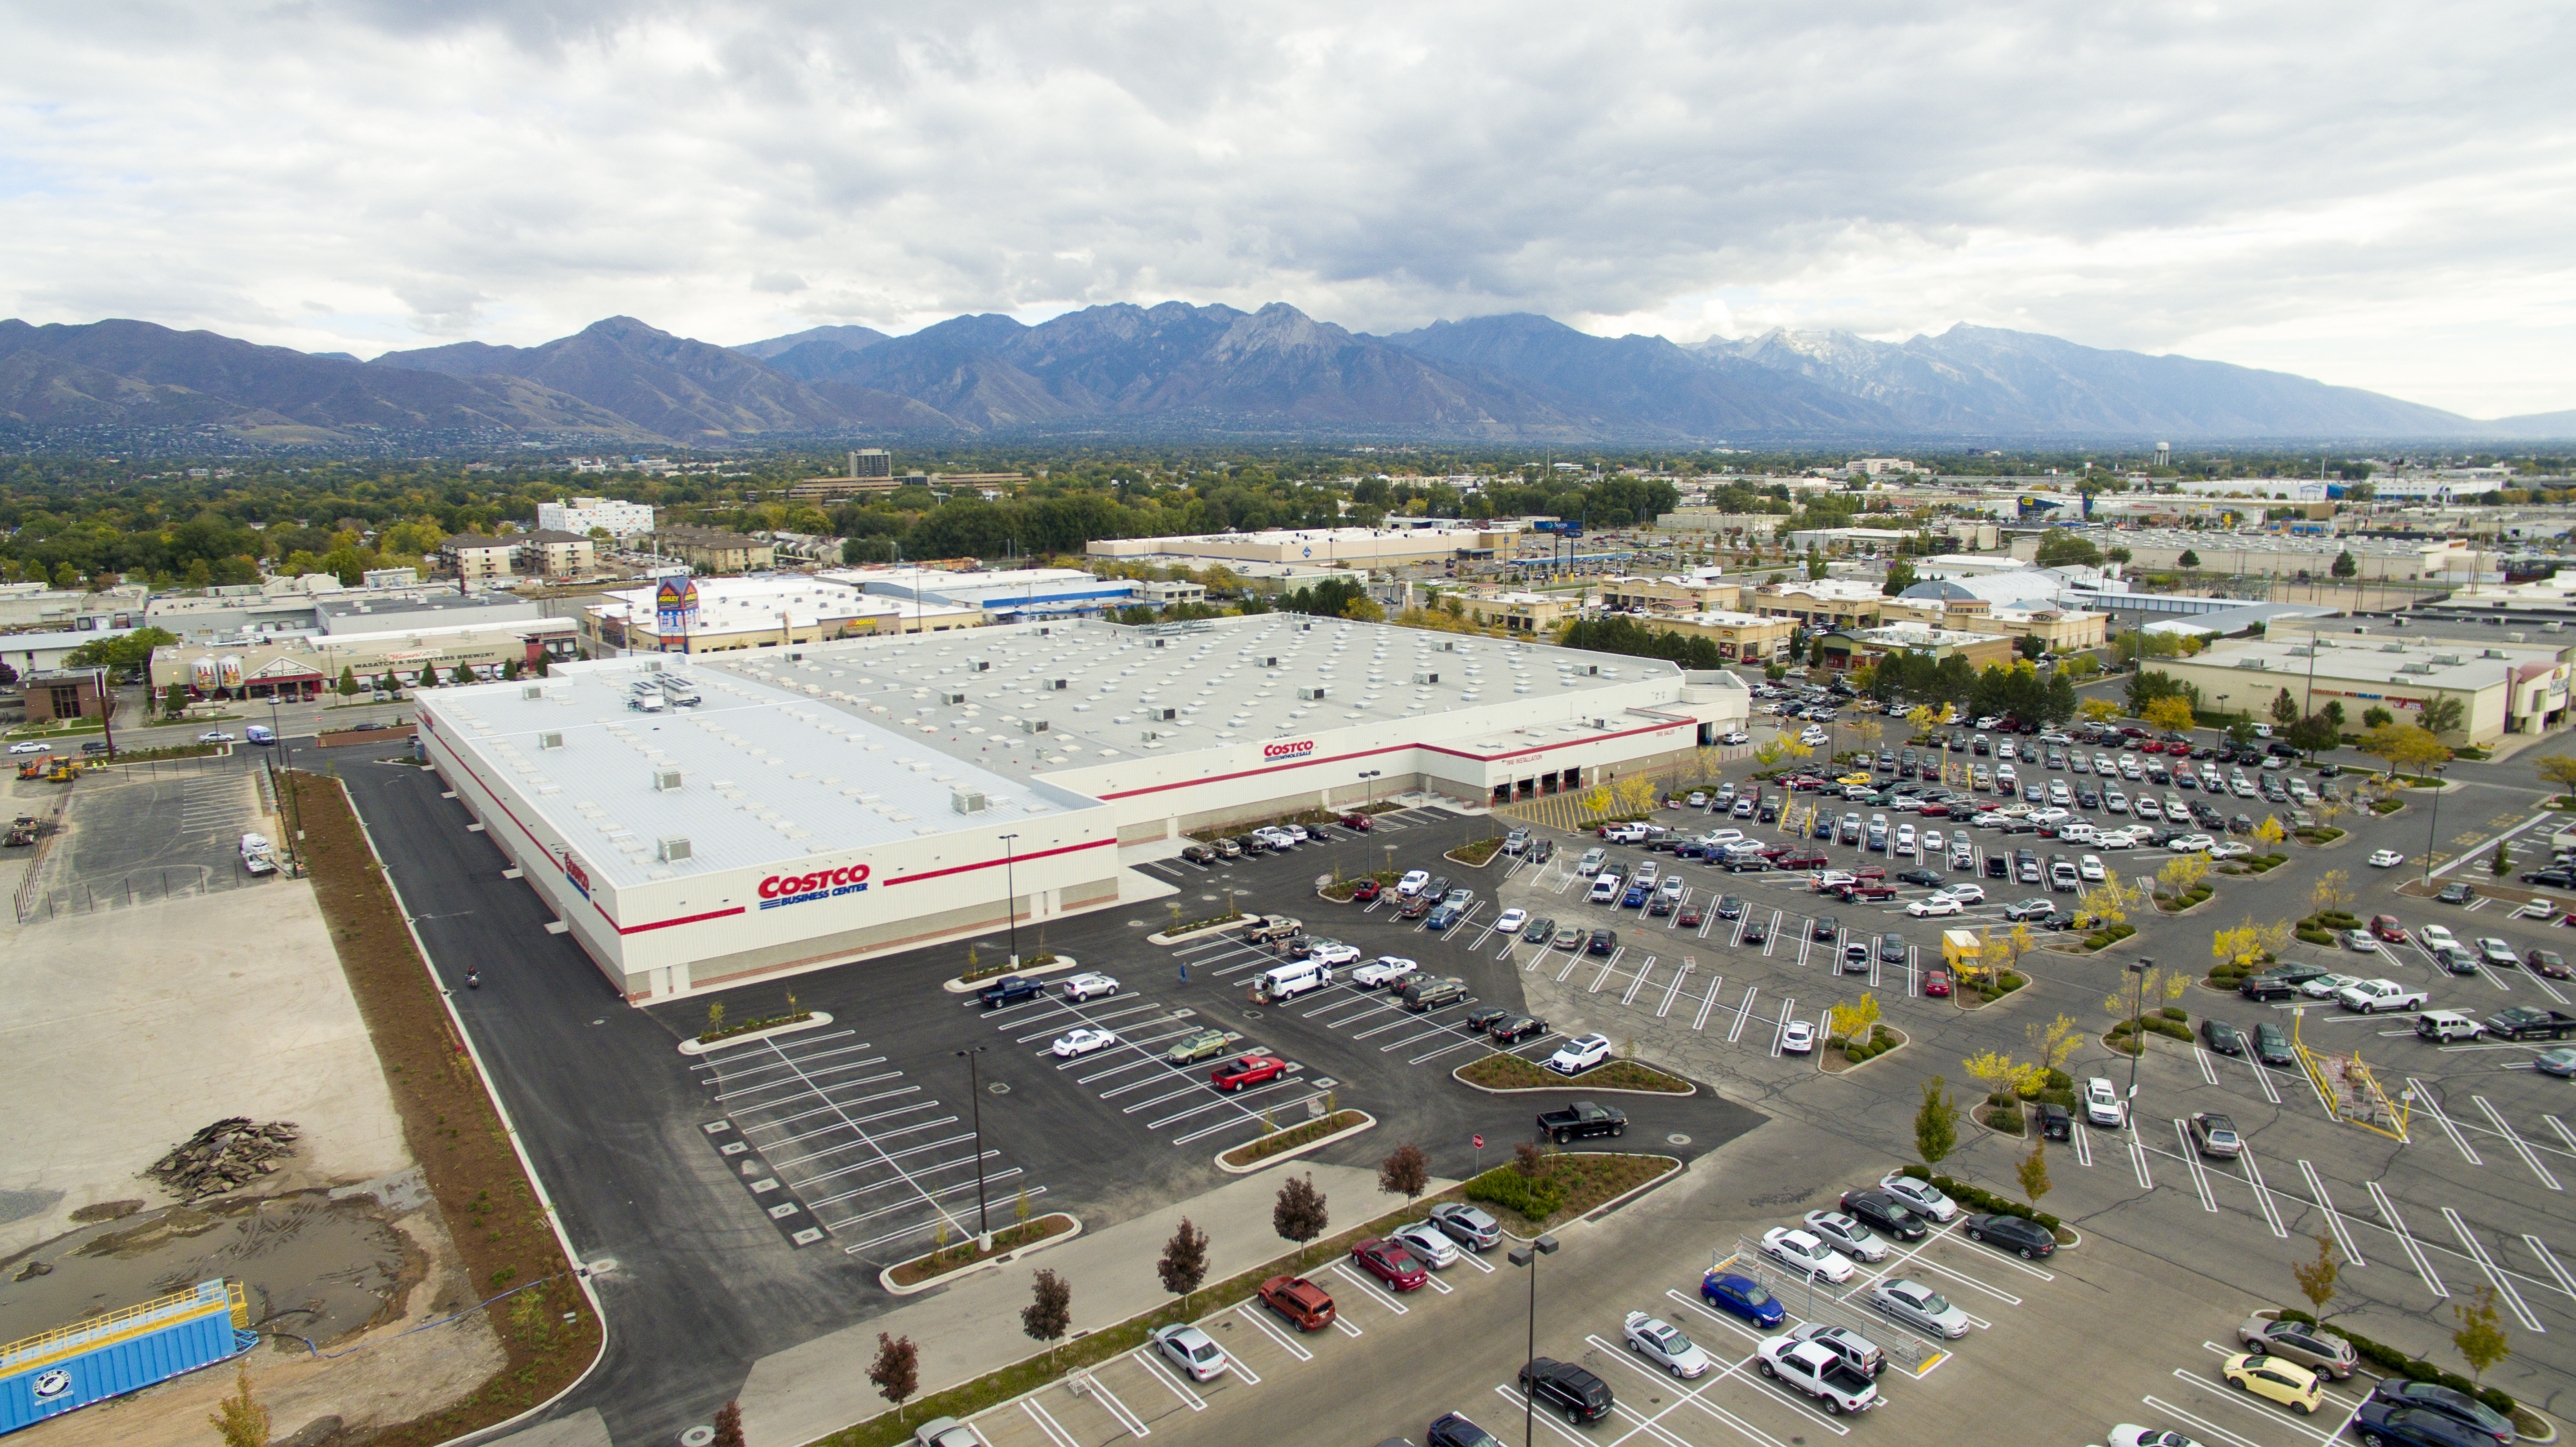 Largest Costco In The World Officially Opens Today News Mg2